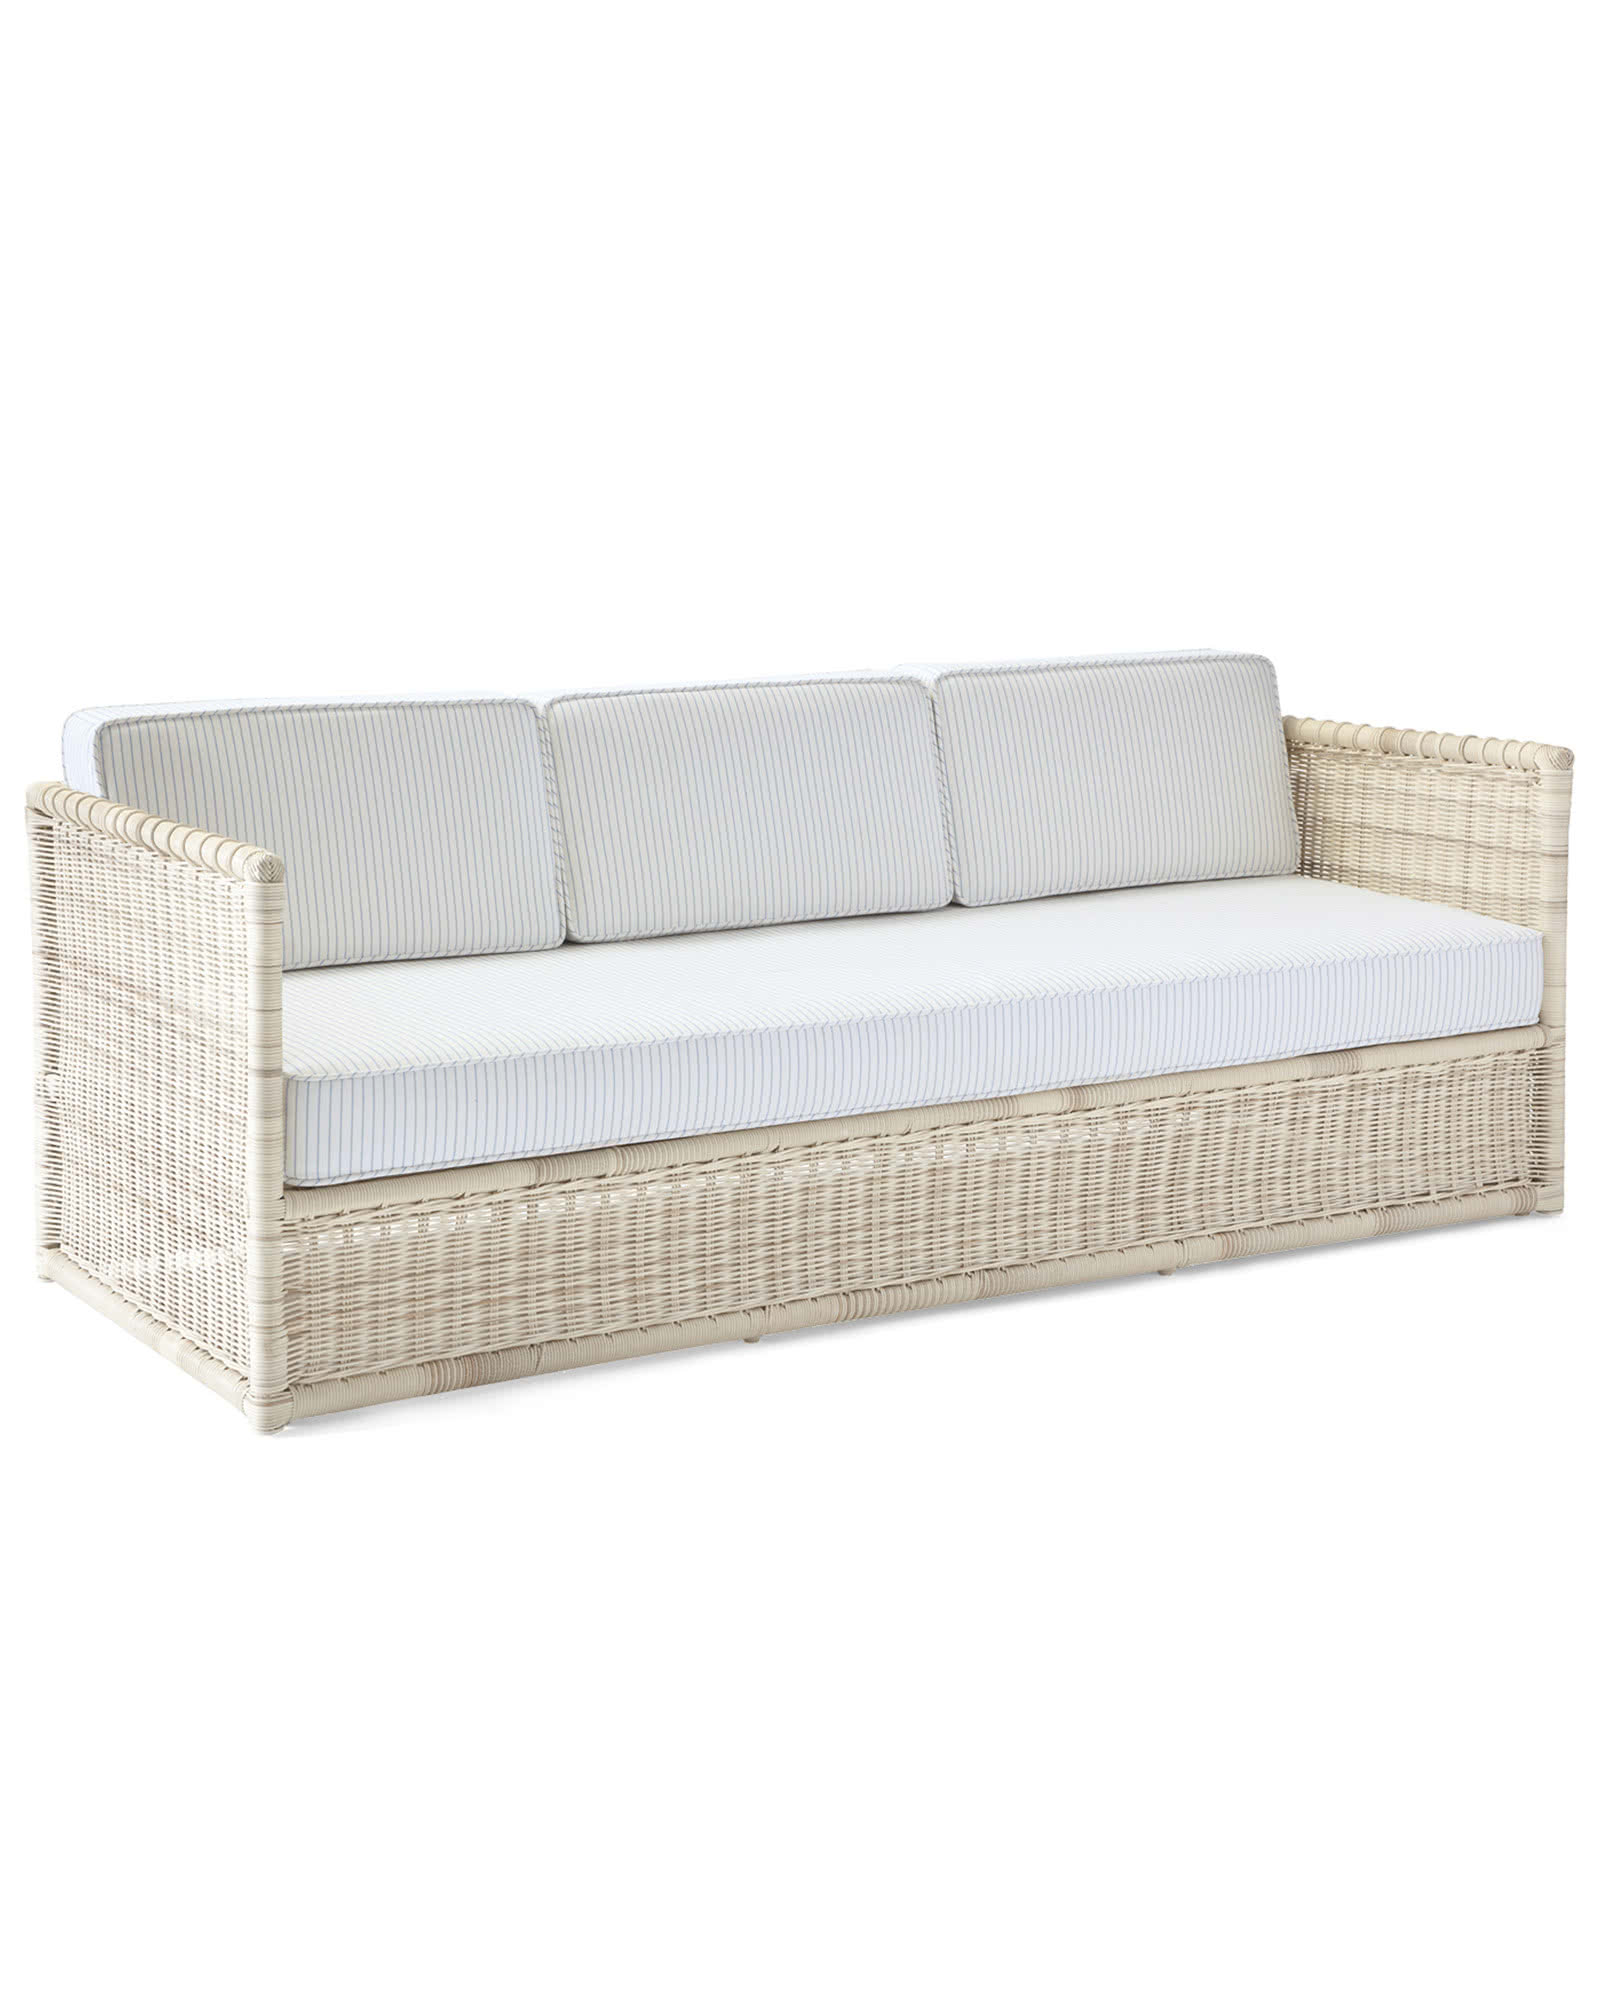 Pacifica Sofa Driftwood Serena & Lily